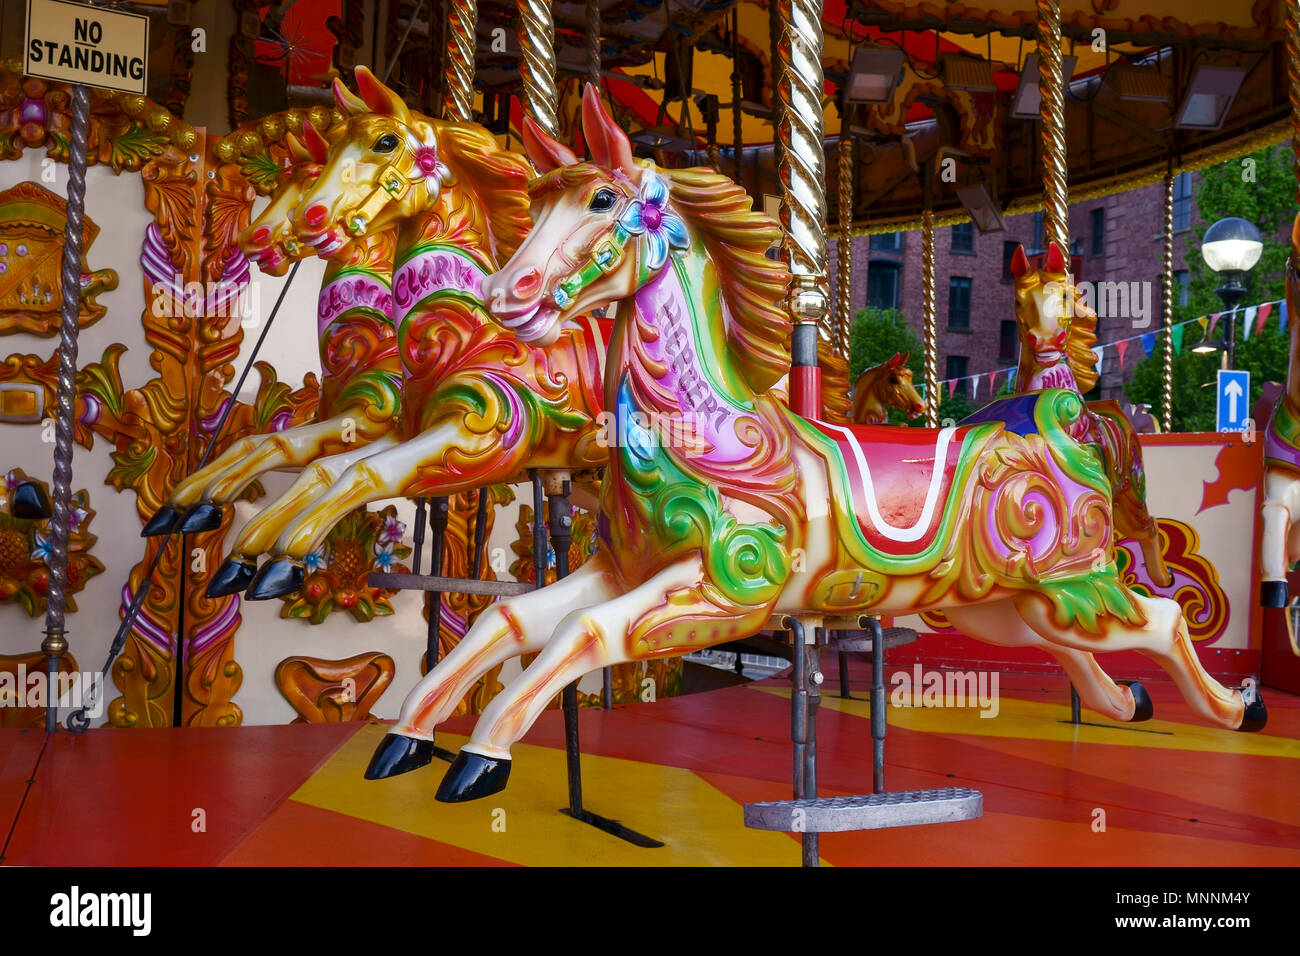 Horses on a fairground carousel ride - Stock Image